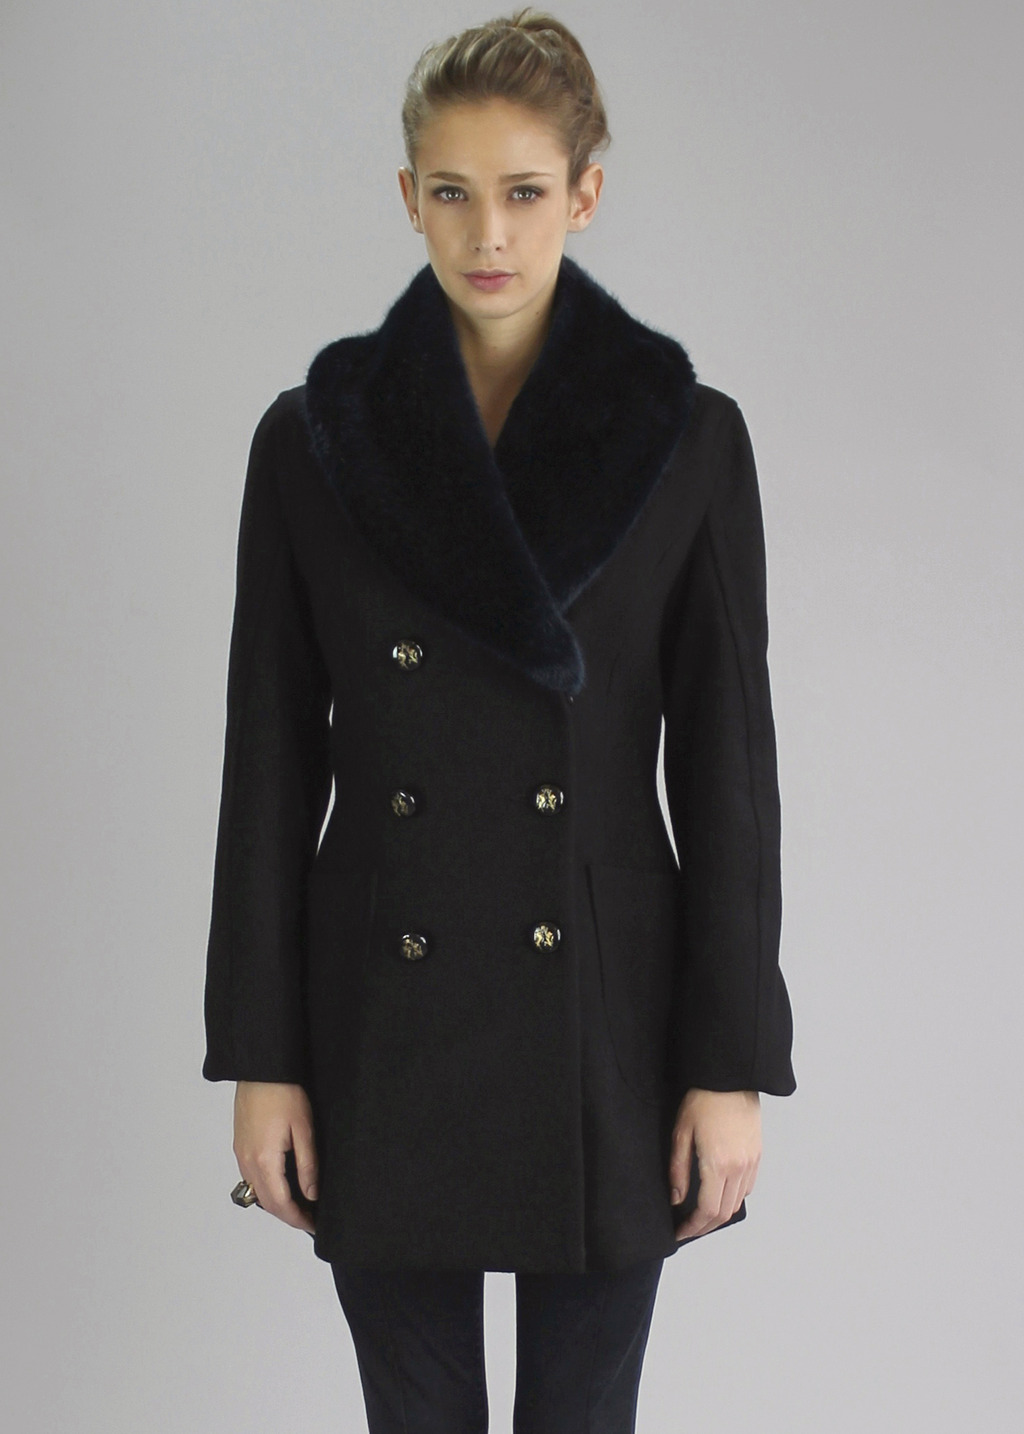 Black Soma Pea Coat - pattern: plain; style: double breasted; length: mid thigh; predominant colour: black; occasions: casual, evening, occasion, creative work; fit: tailored/fitted; fibres: wool - mix; sleeve length: long sleeve; sleeve style: standard; collar: fur; collar break: high; pattern type: fabric; texture group: woven bulky/heavy; season: a/w 2013; hip detail: front pockets at hip